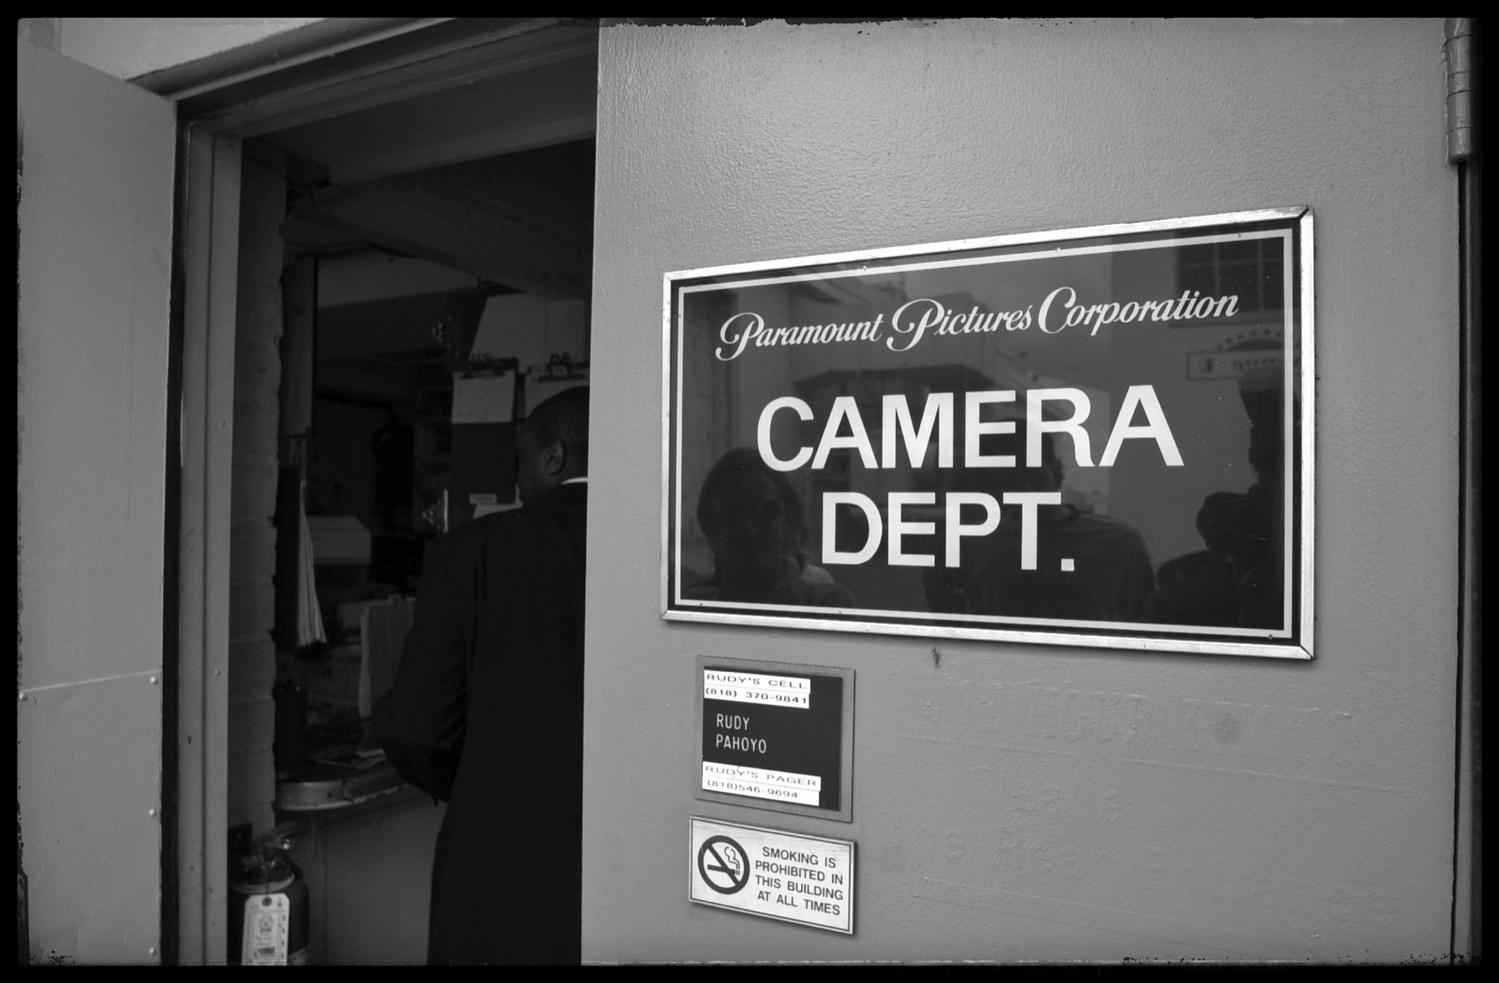 Camera Dept. by Yves Van den Meerssche